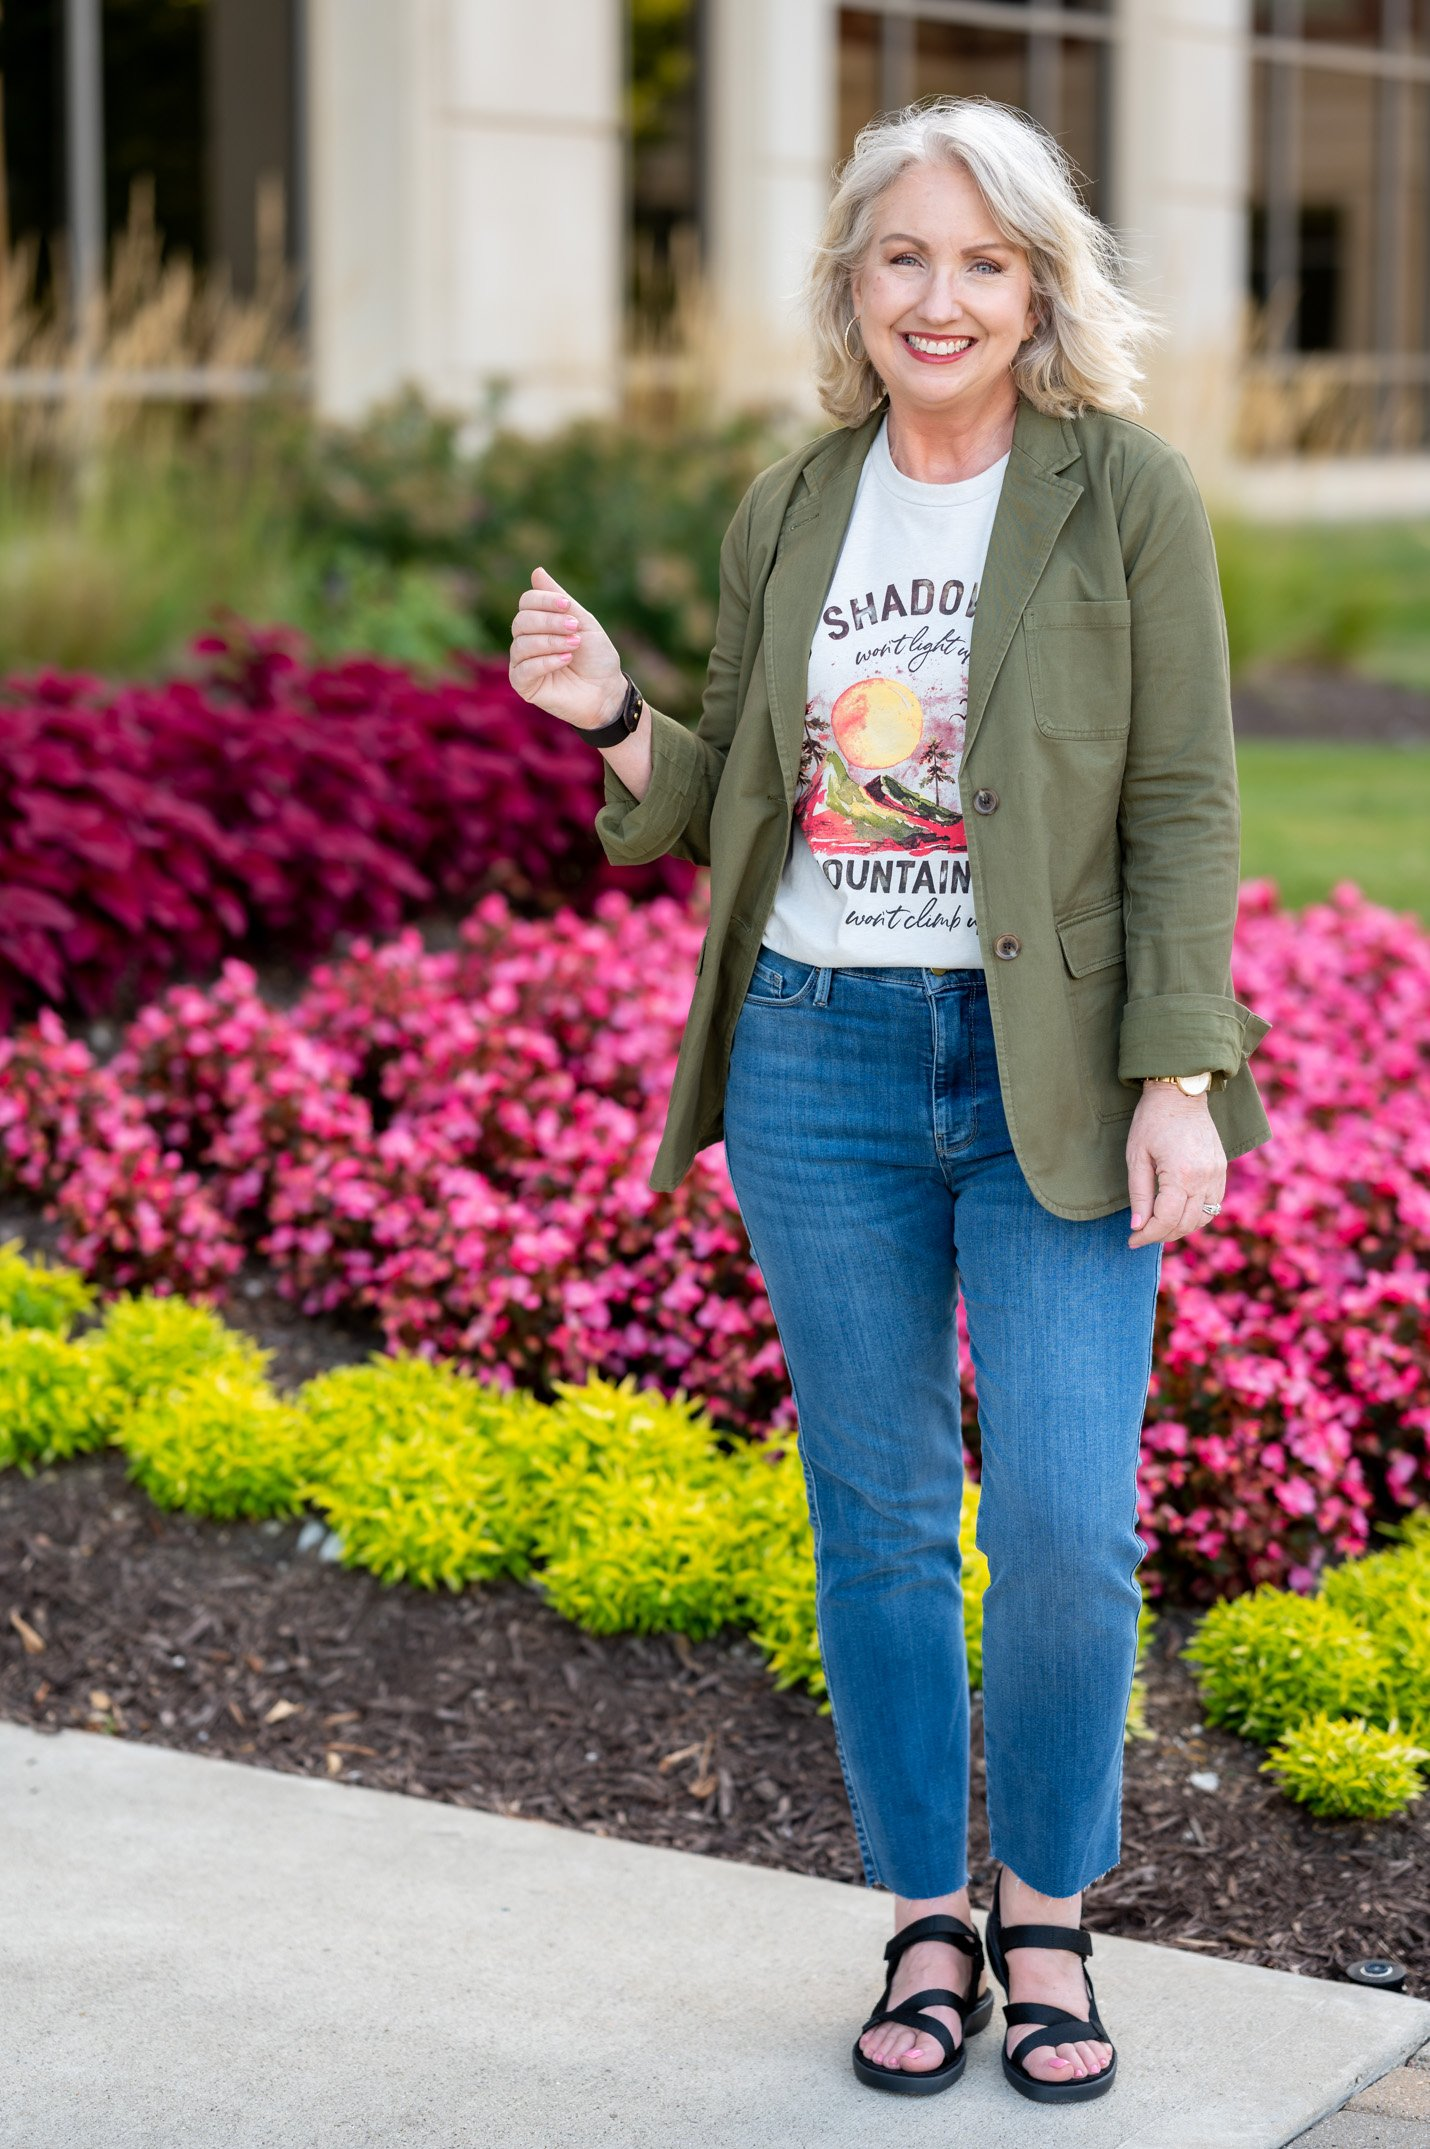 Transition to Fall Outfit with a Graphic Tee, Blazer and Jeans